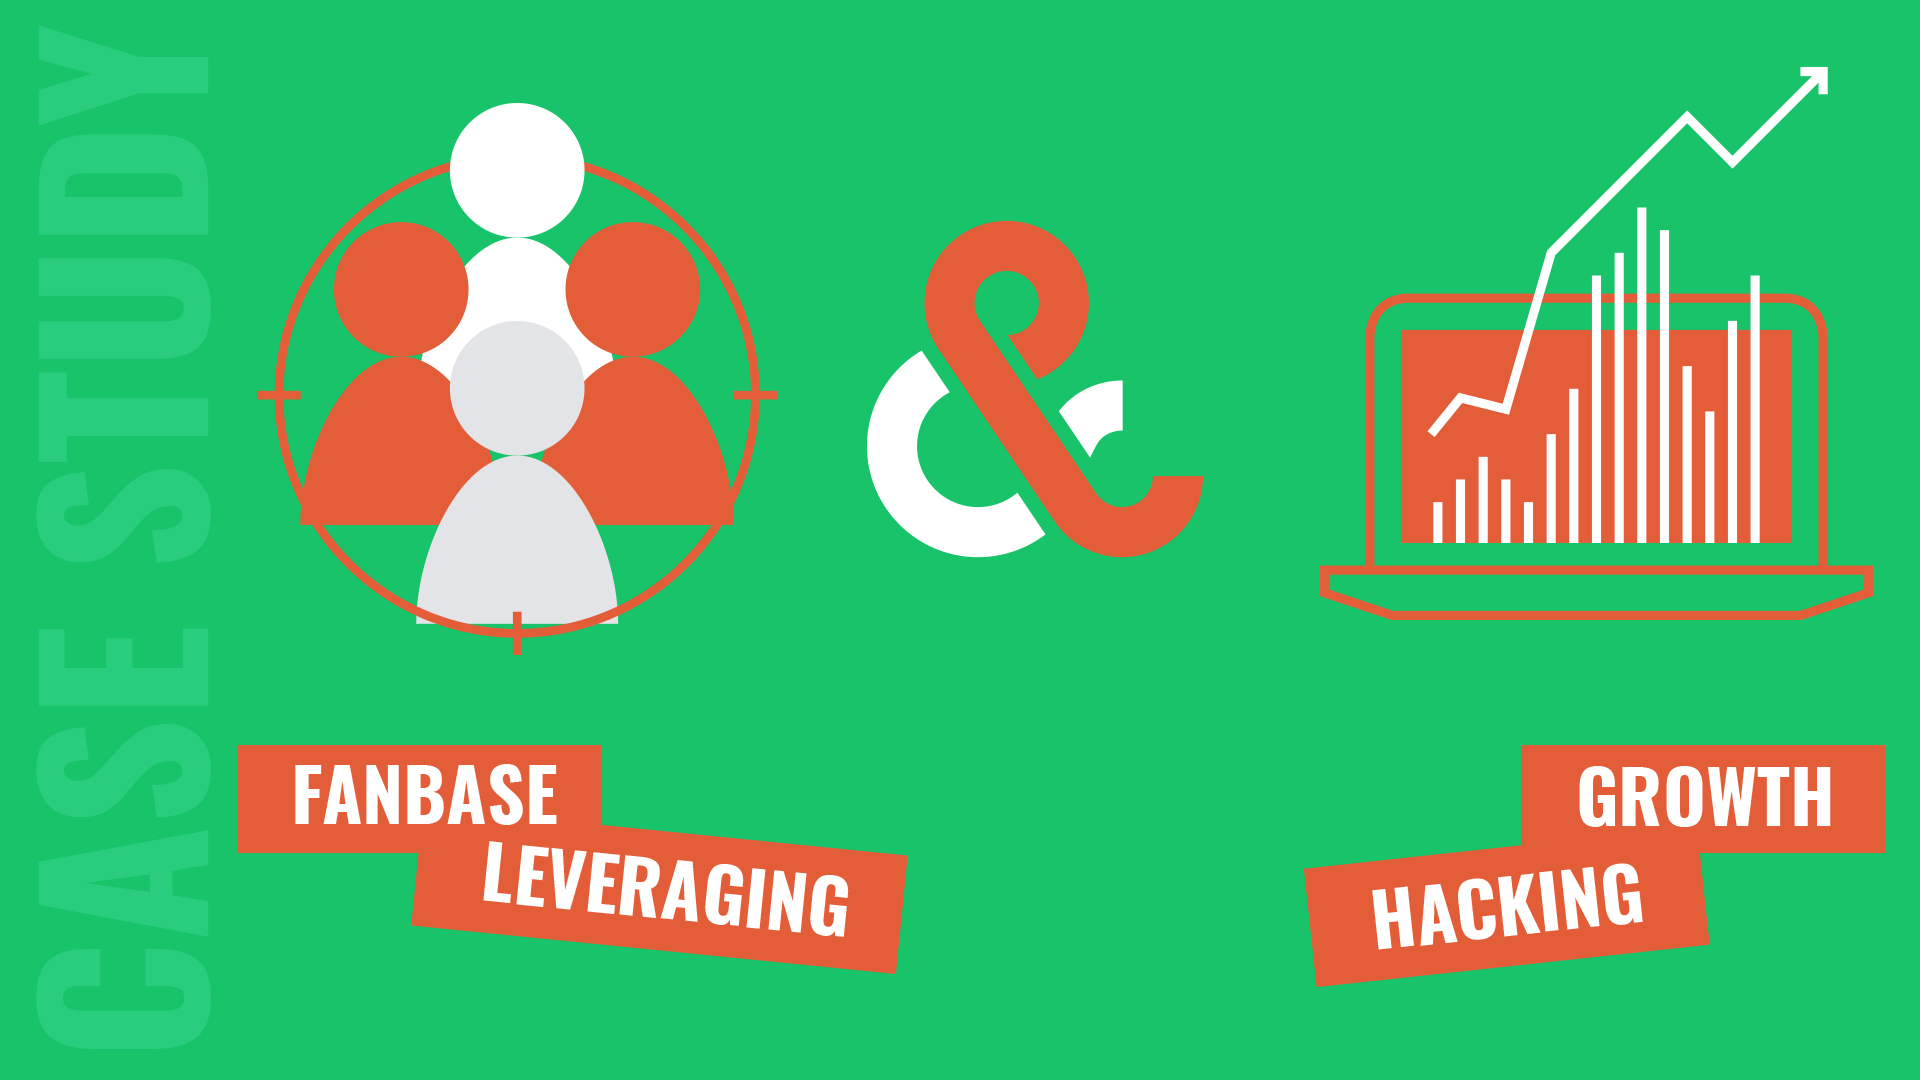 Fanbase Leveraging & Growth Hacking